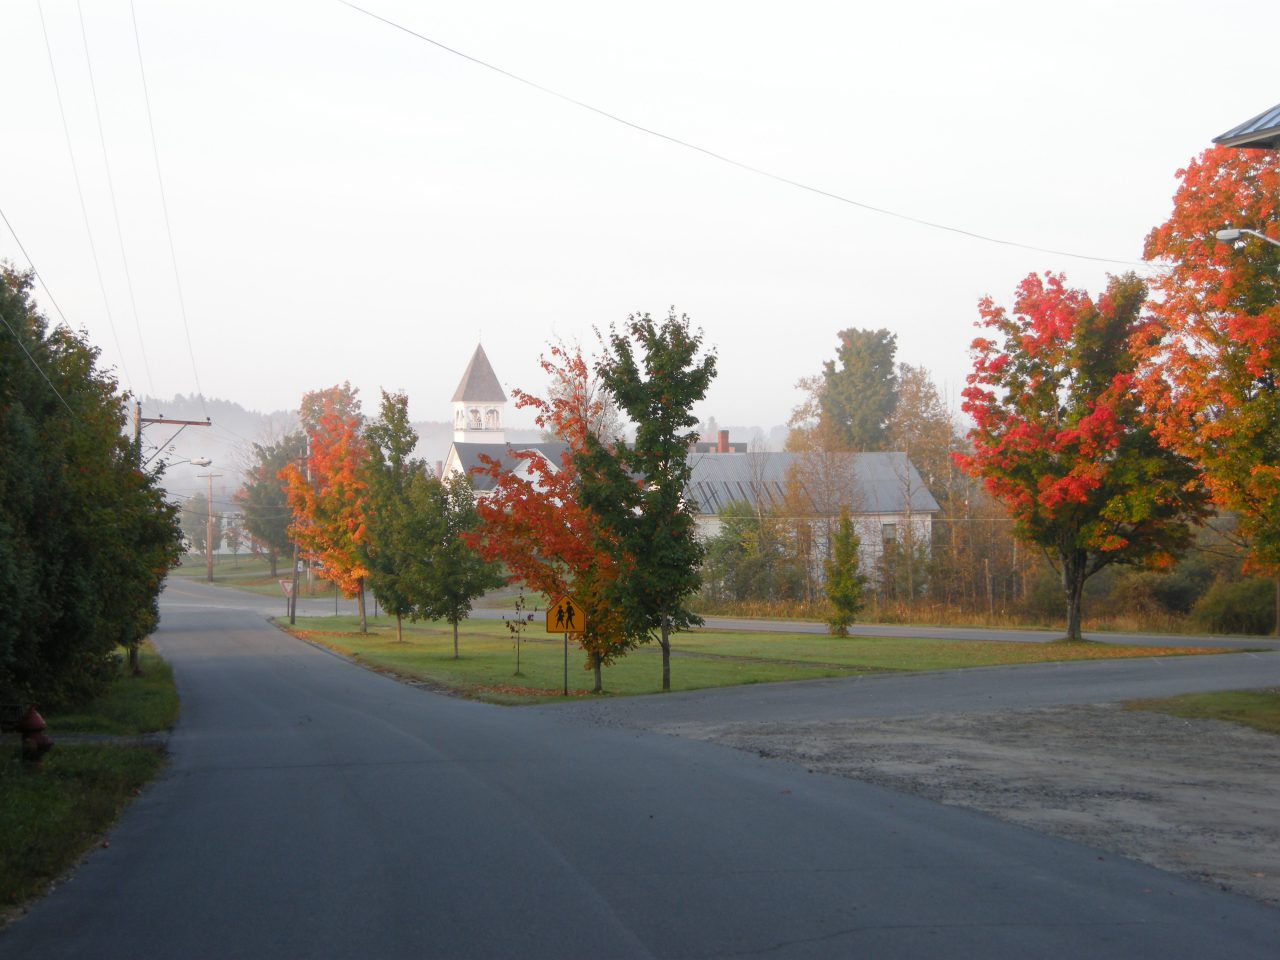 2008 – Fall foliage in town